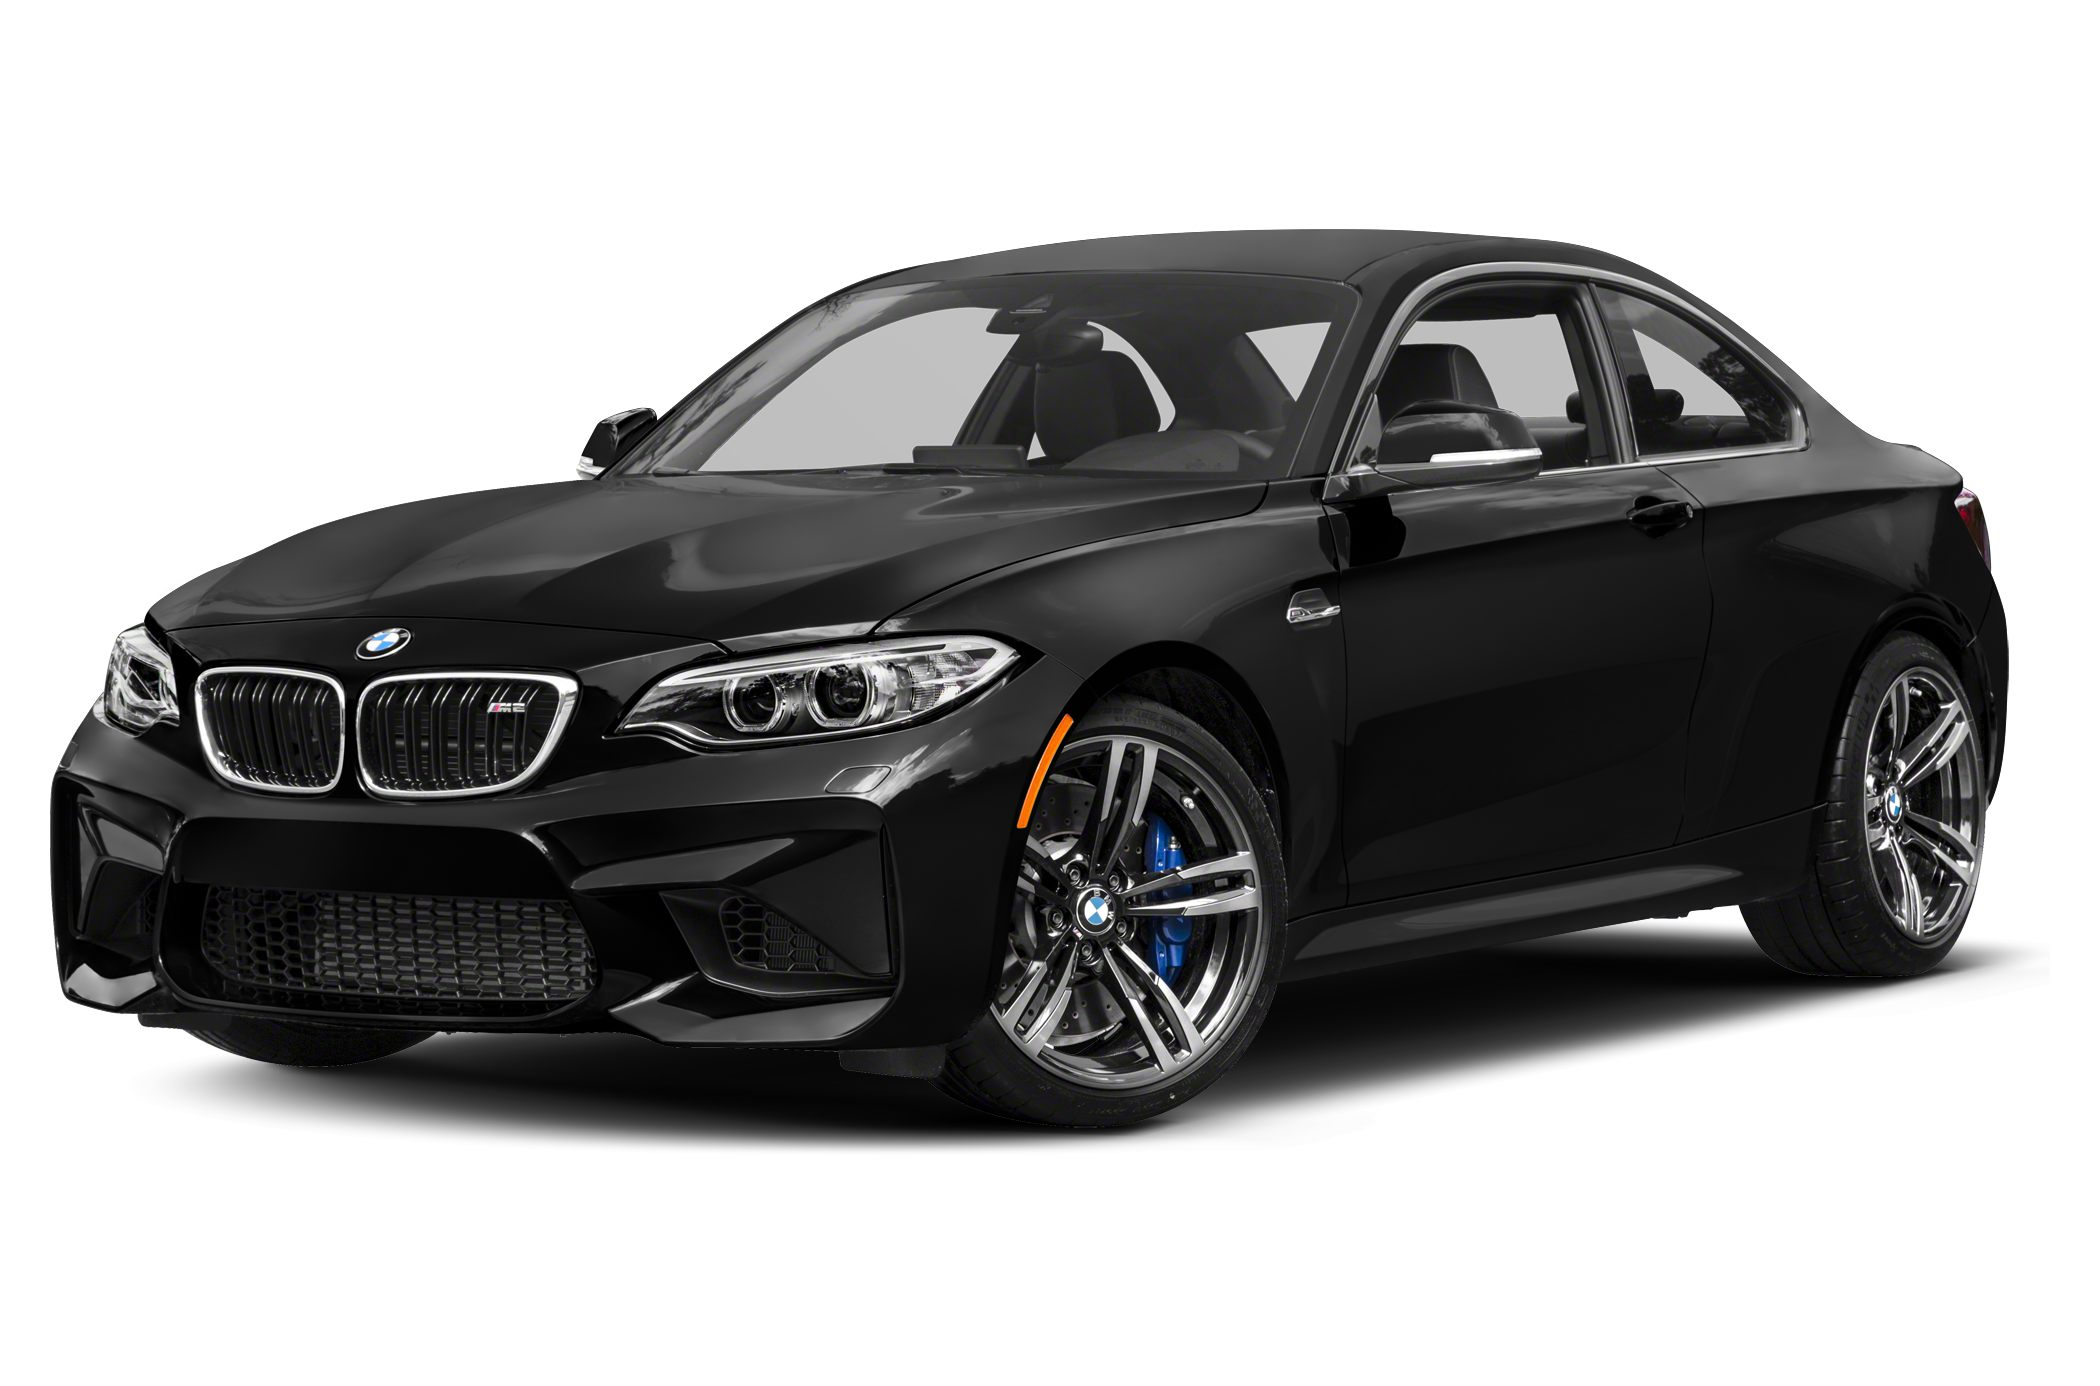 bmw m2 prototype suggests special model or early facelift autoblog. Black Bedroom Furniture Sets. Home Design Ideas